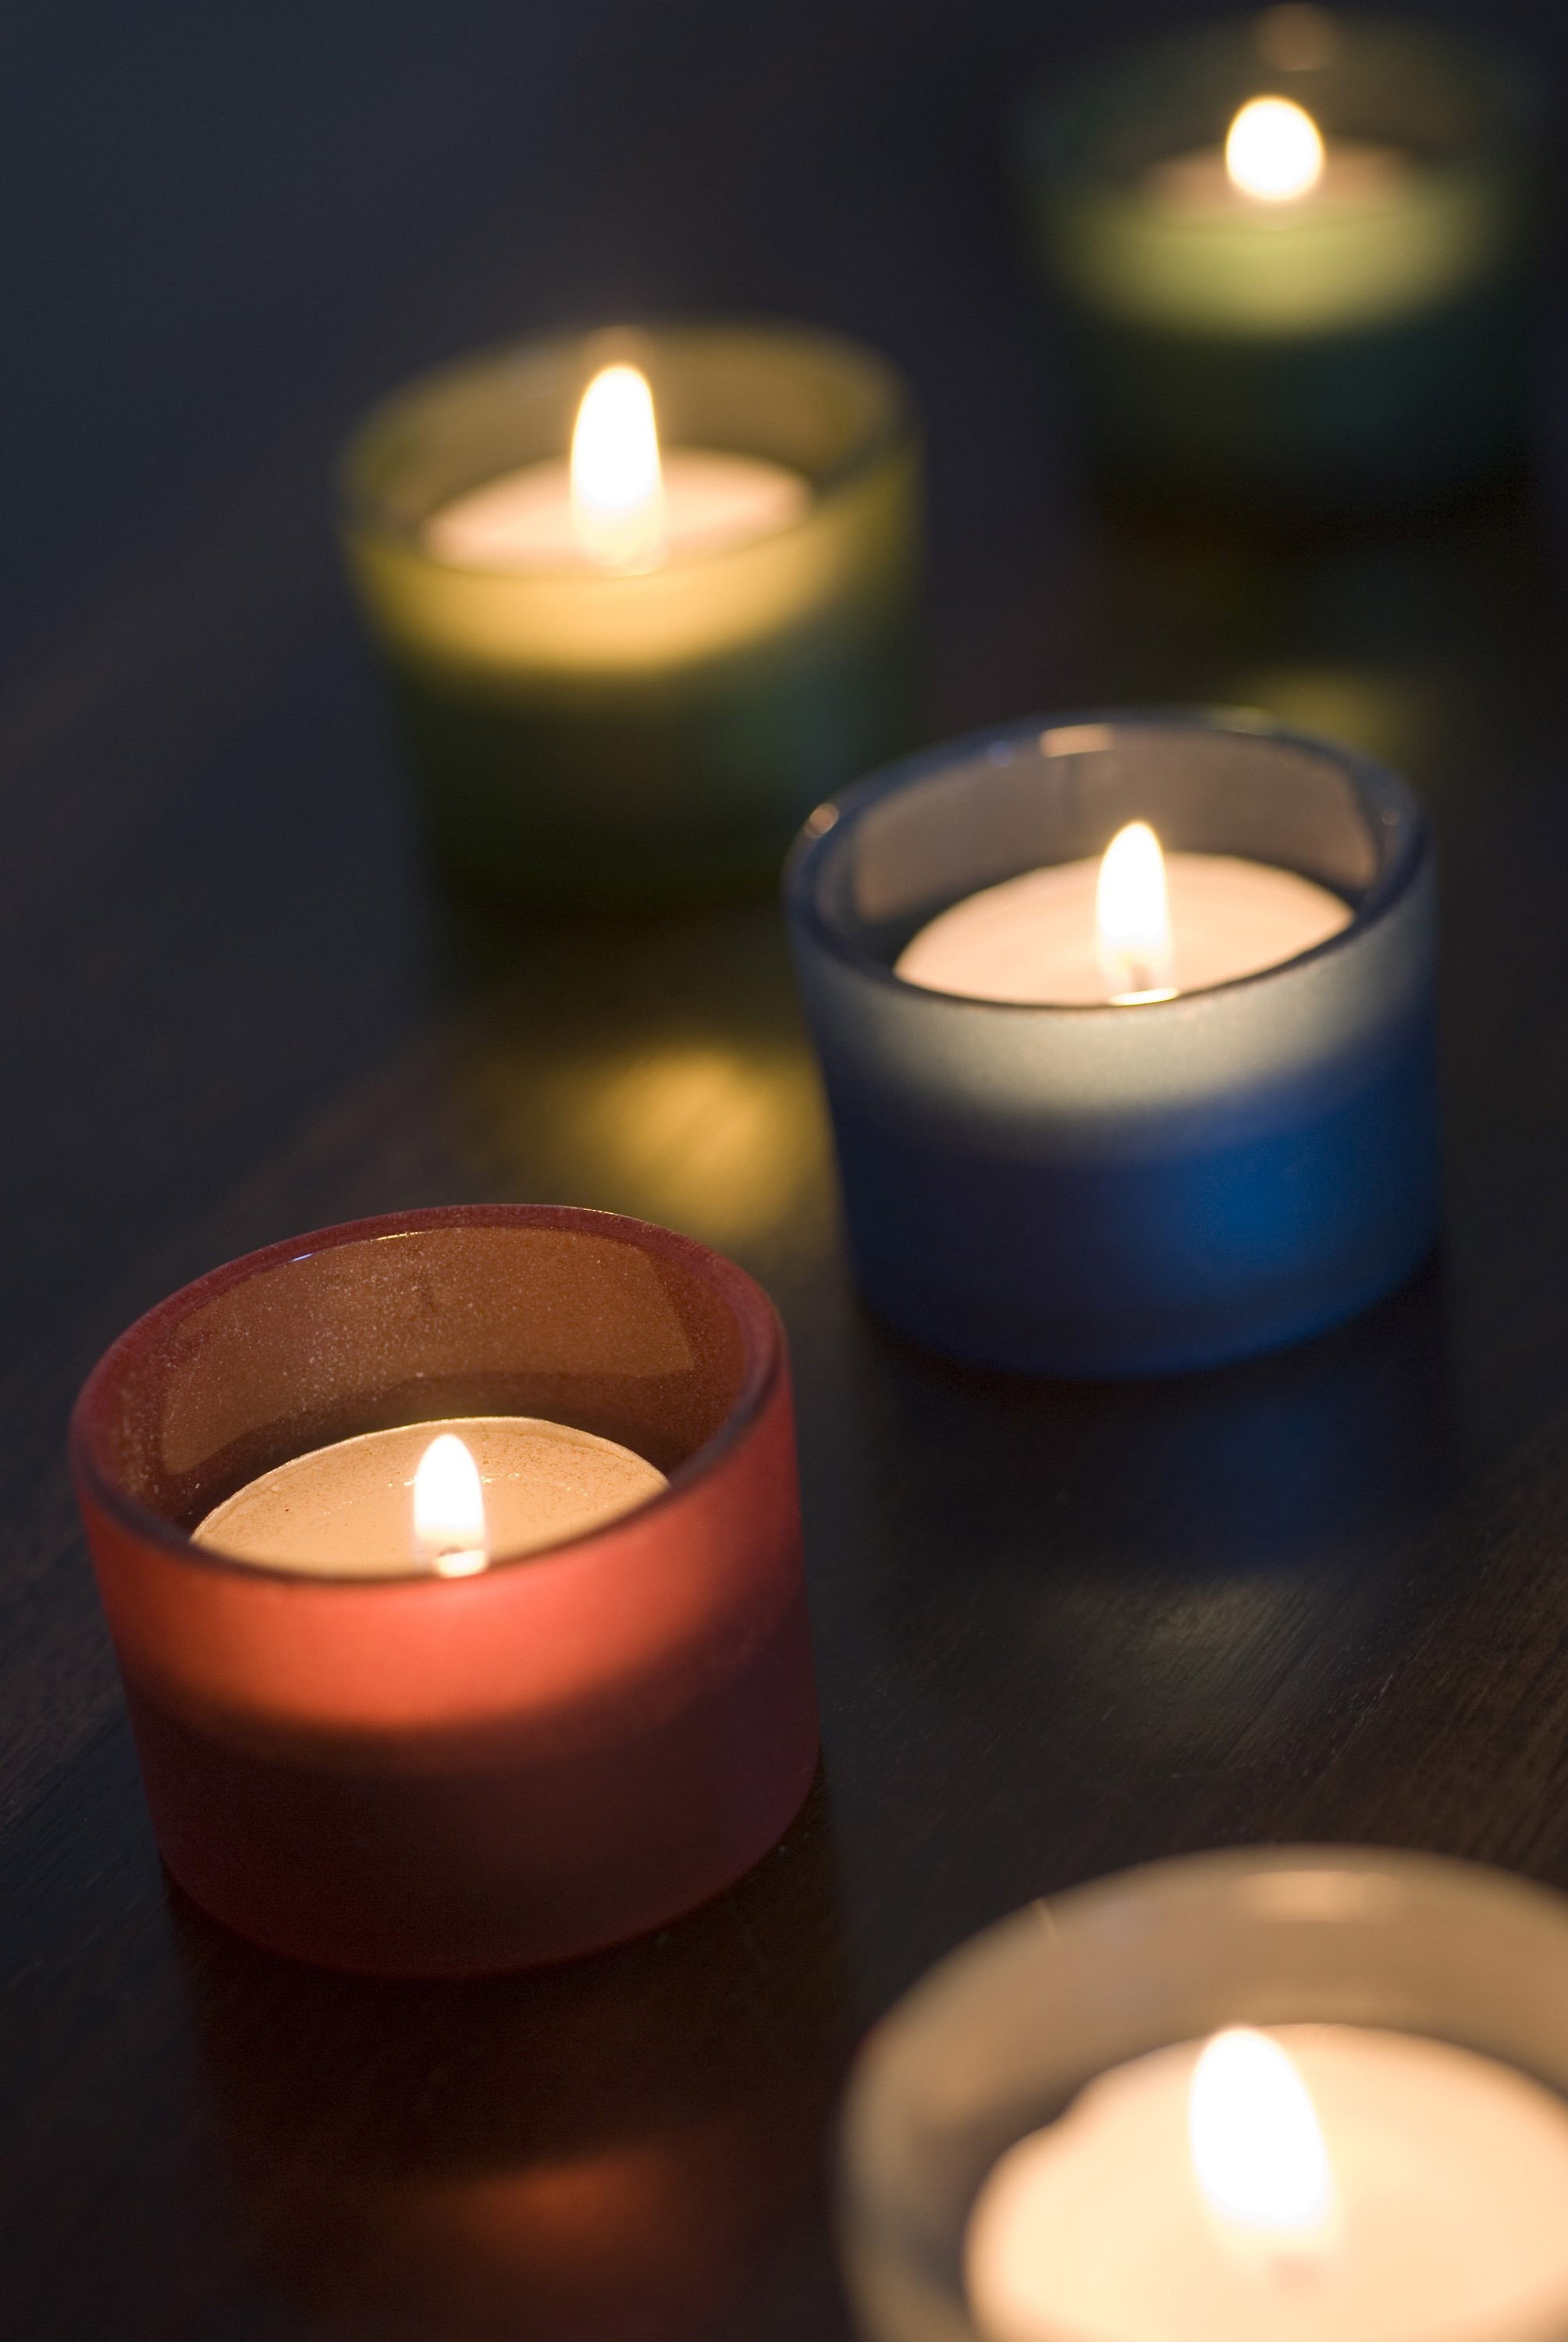 Five different coloured tea light candles